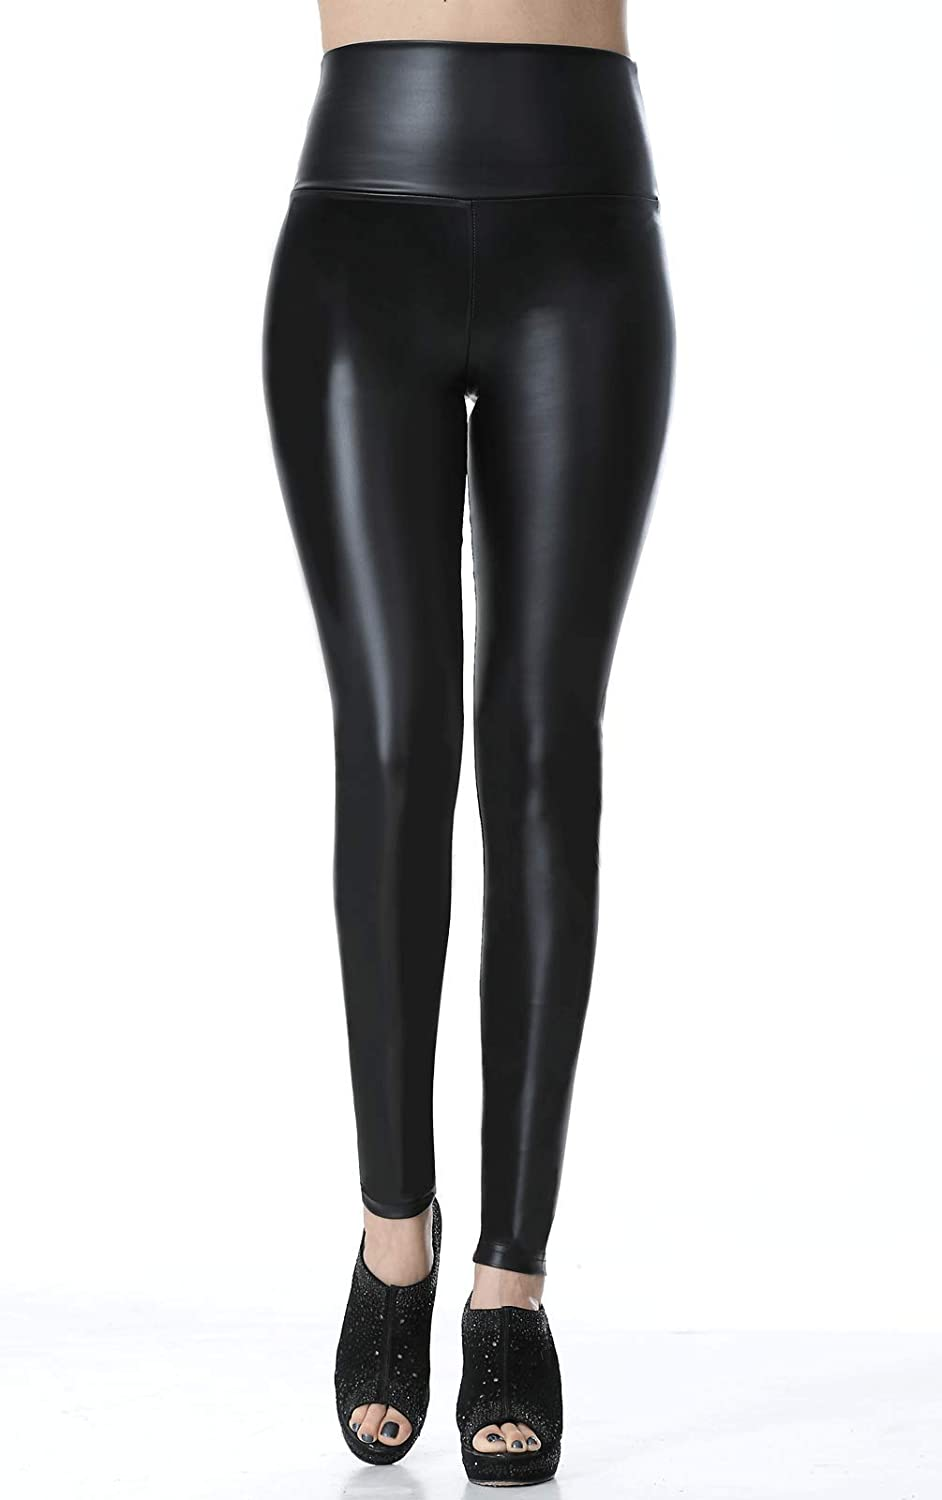 62b862488ff12 Everbellus Faux Leather Leggings for Women High Waist Skinny Leather Pants  Black at Amazon Women's Clothing store: